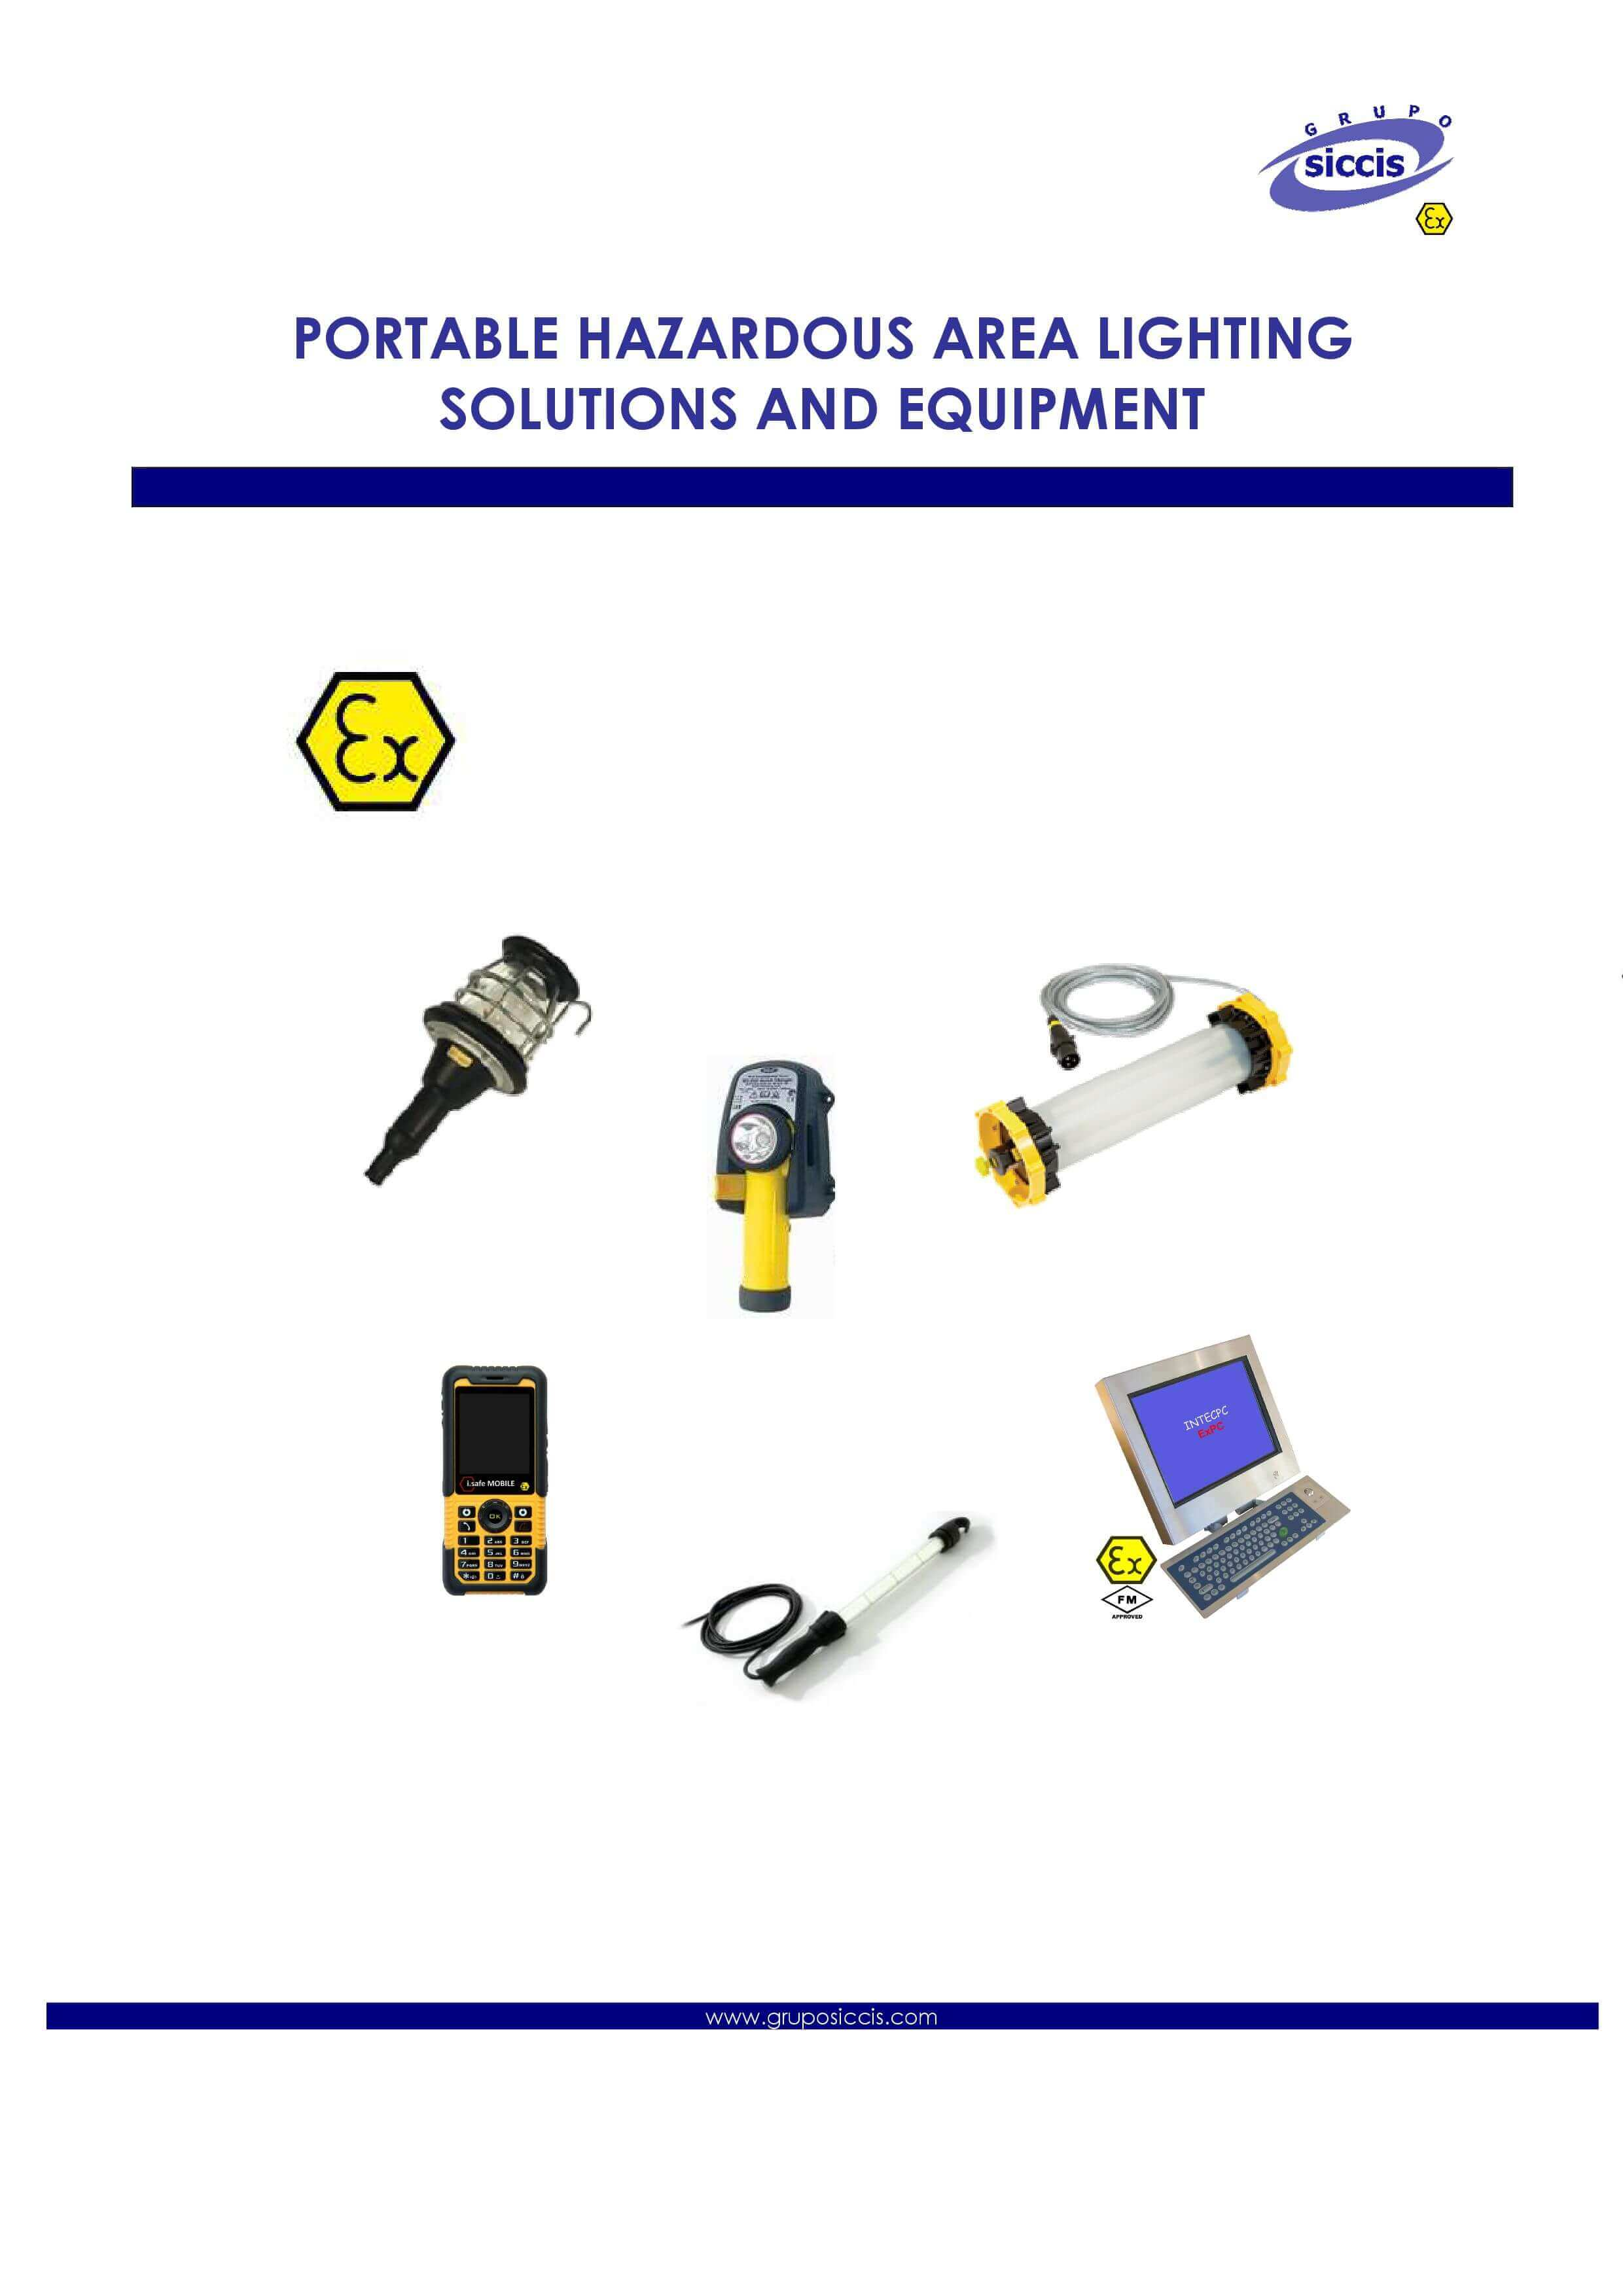 ATEX Portable Lighting Catalog